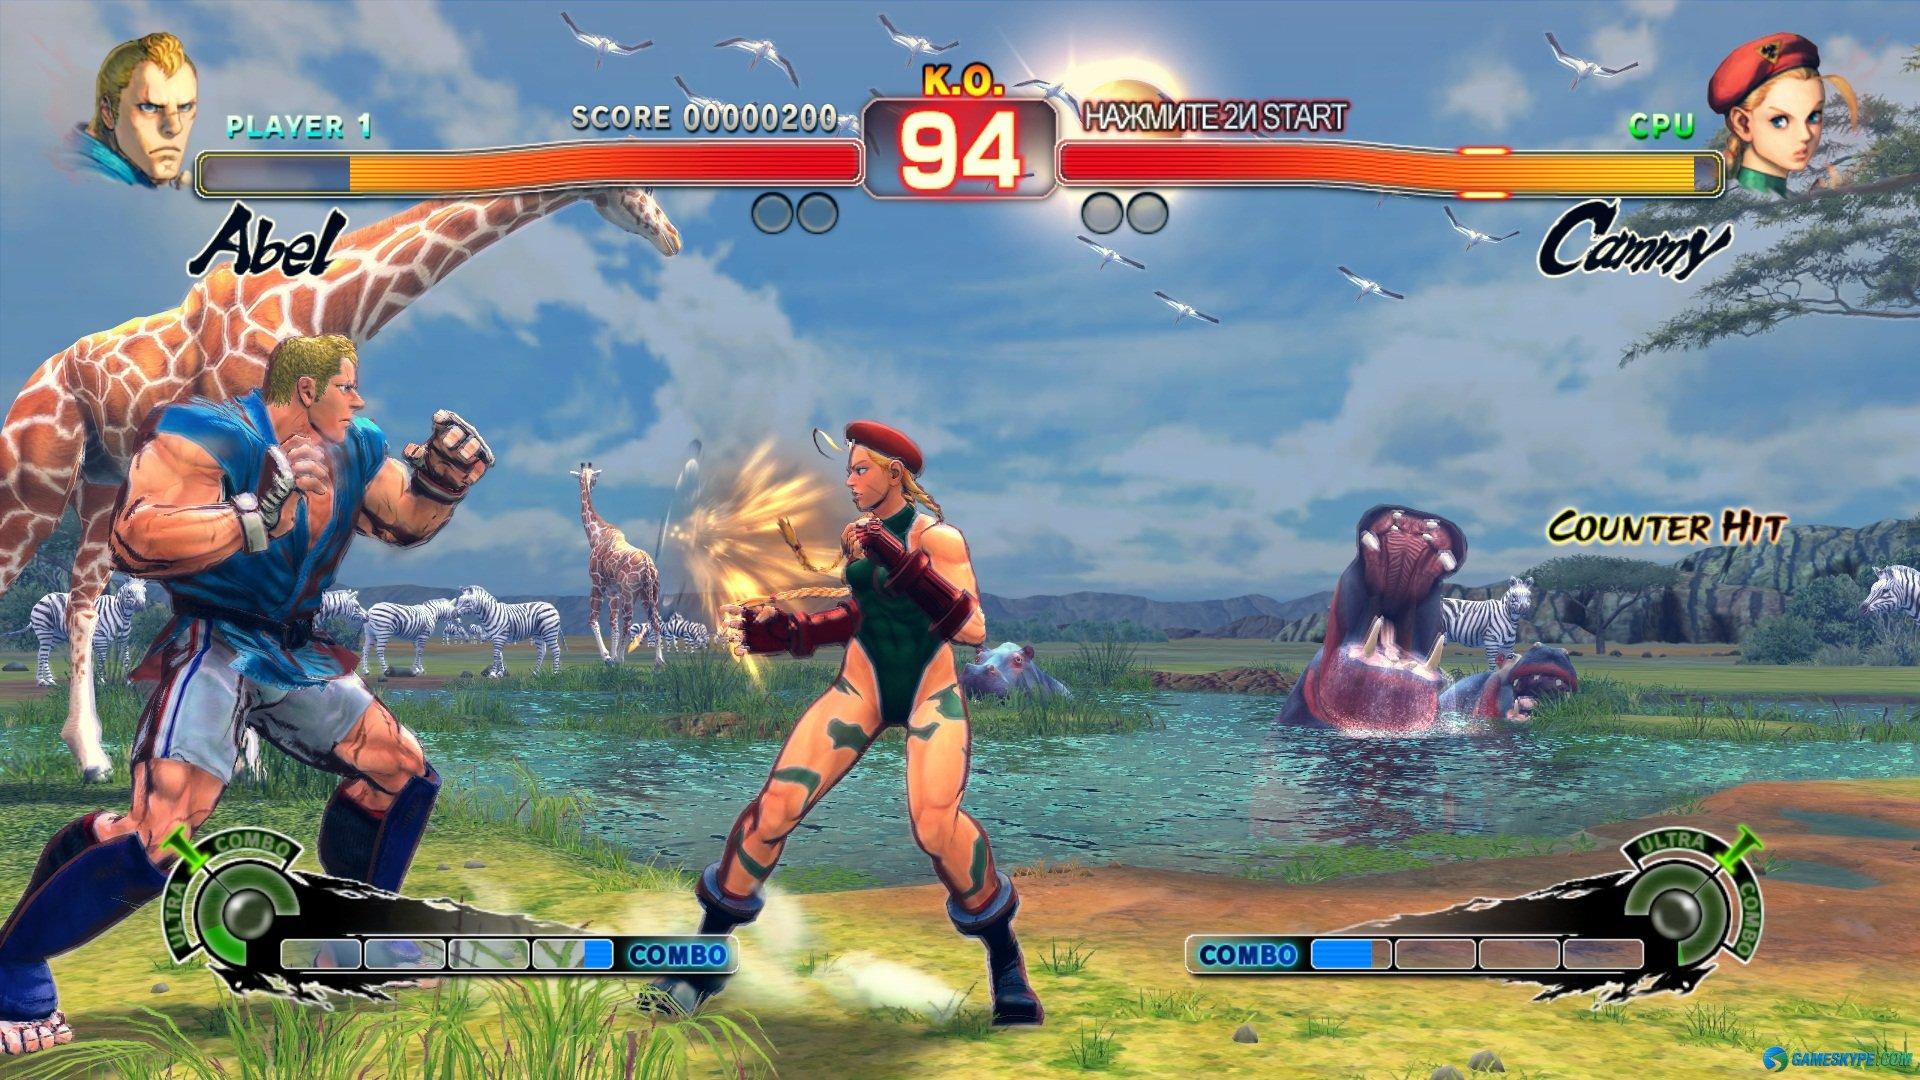 Super street fighter iv arcade edition nude  exposed girlfriends